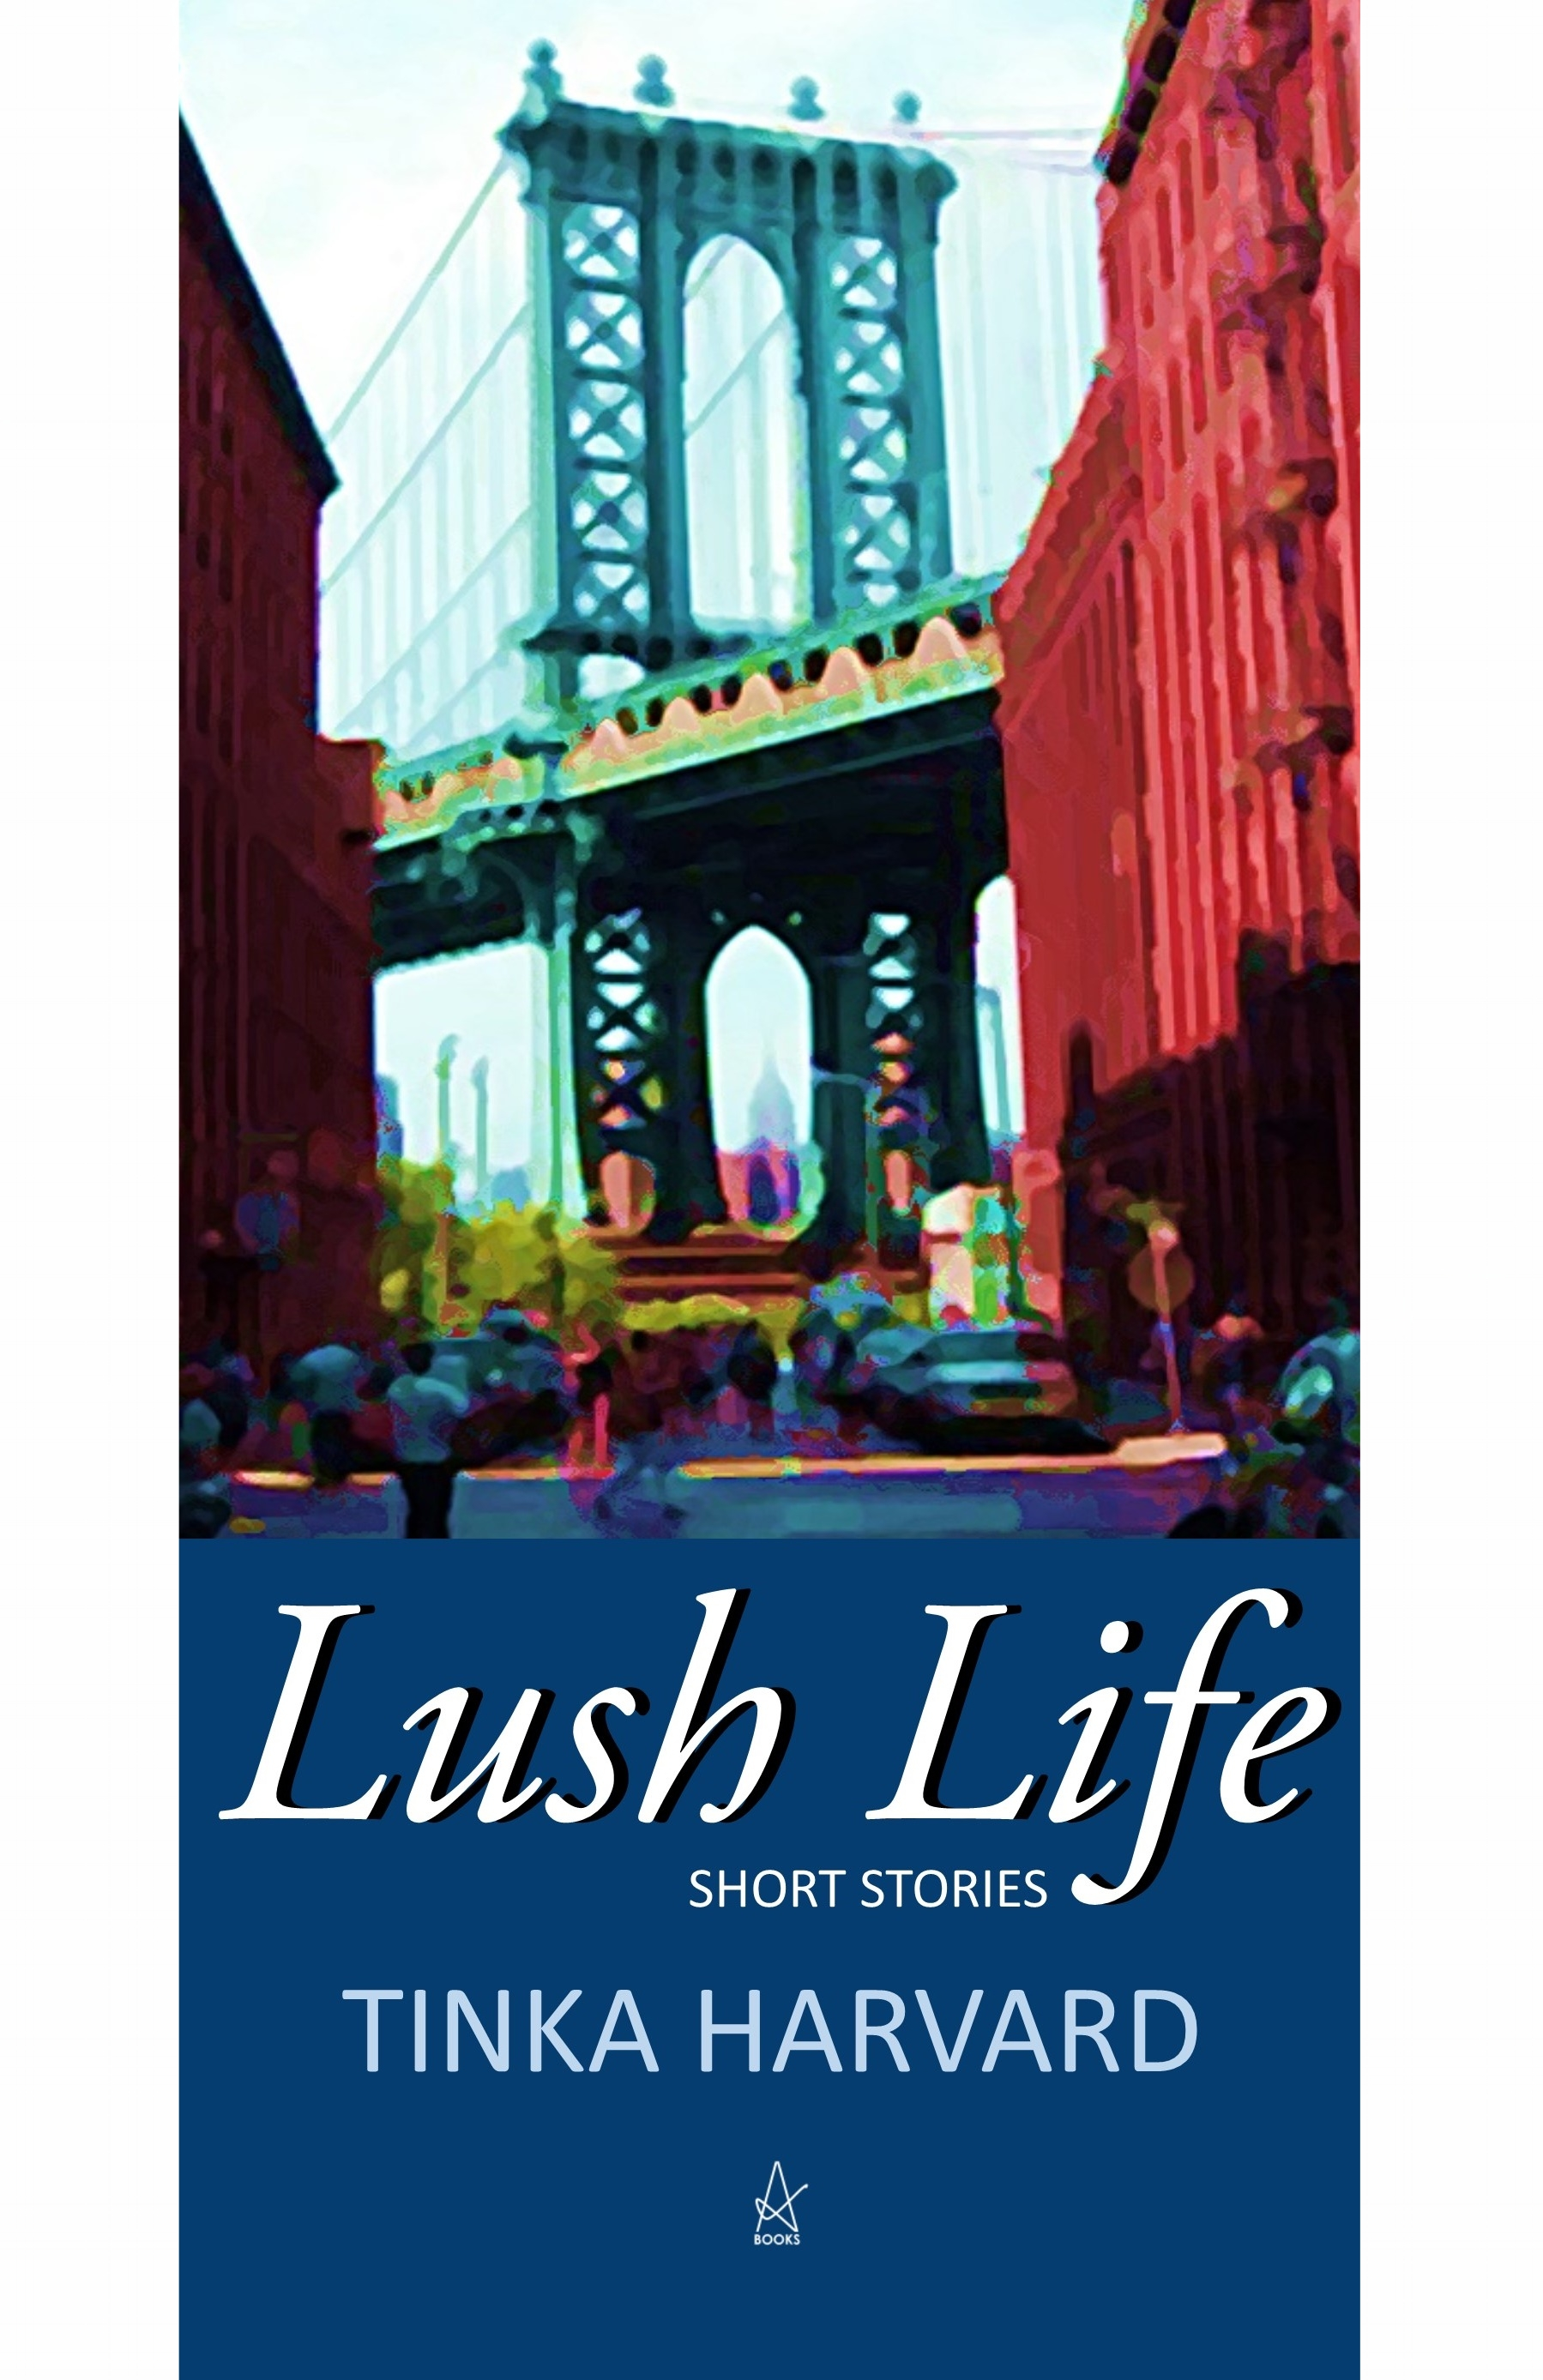 - Lush Life will take you on a twisting, turning, emotional ride, the stories evocative in language, the characters open and vulnerable and revealing, and the plots always driving the themes. Each story is a like a glass of wine to be savored. This book will help you relax and enjoy the sheer pleasure of reading.—John McCaffrey, Author